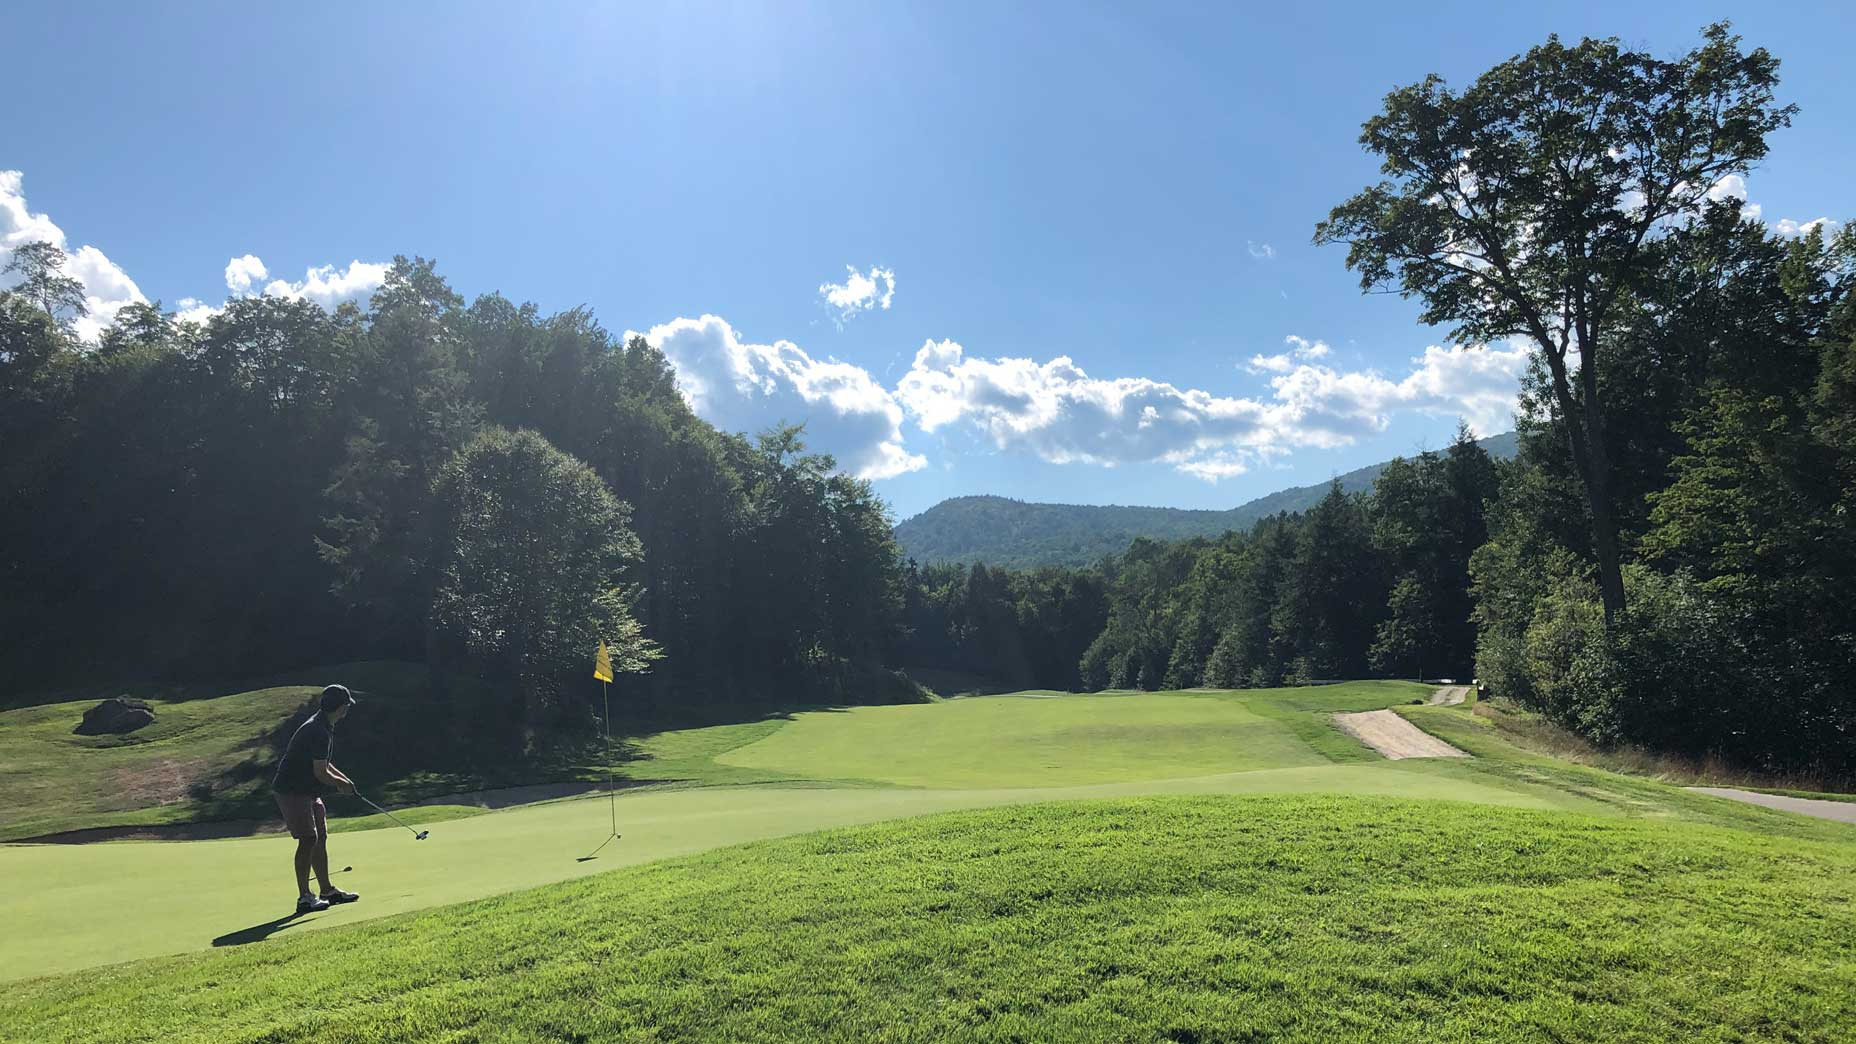 A below-average golfer at Green Mountain National Golf Course.